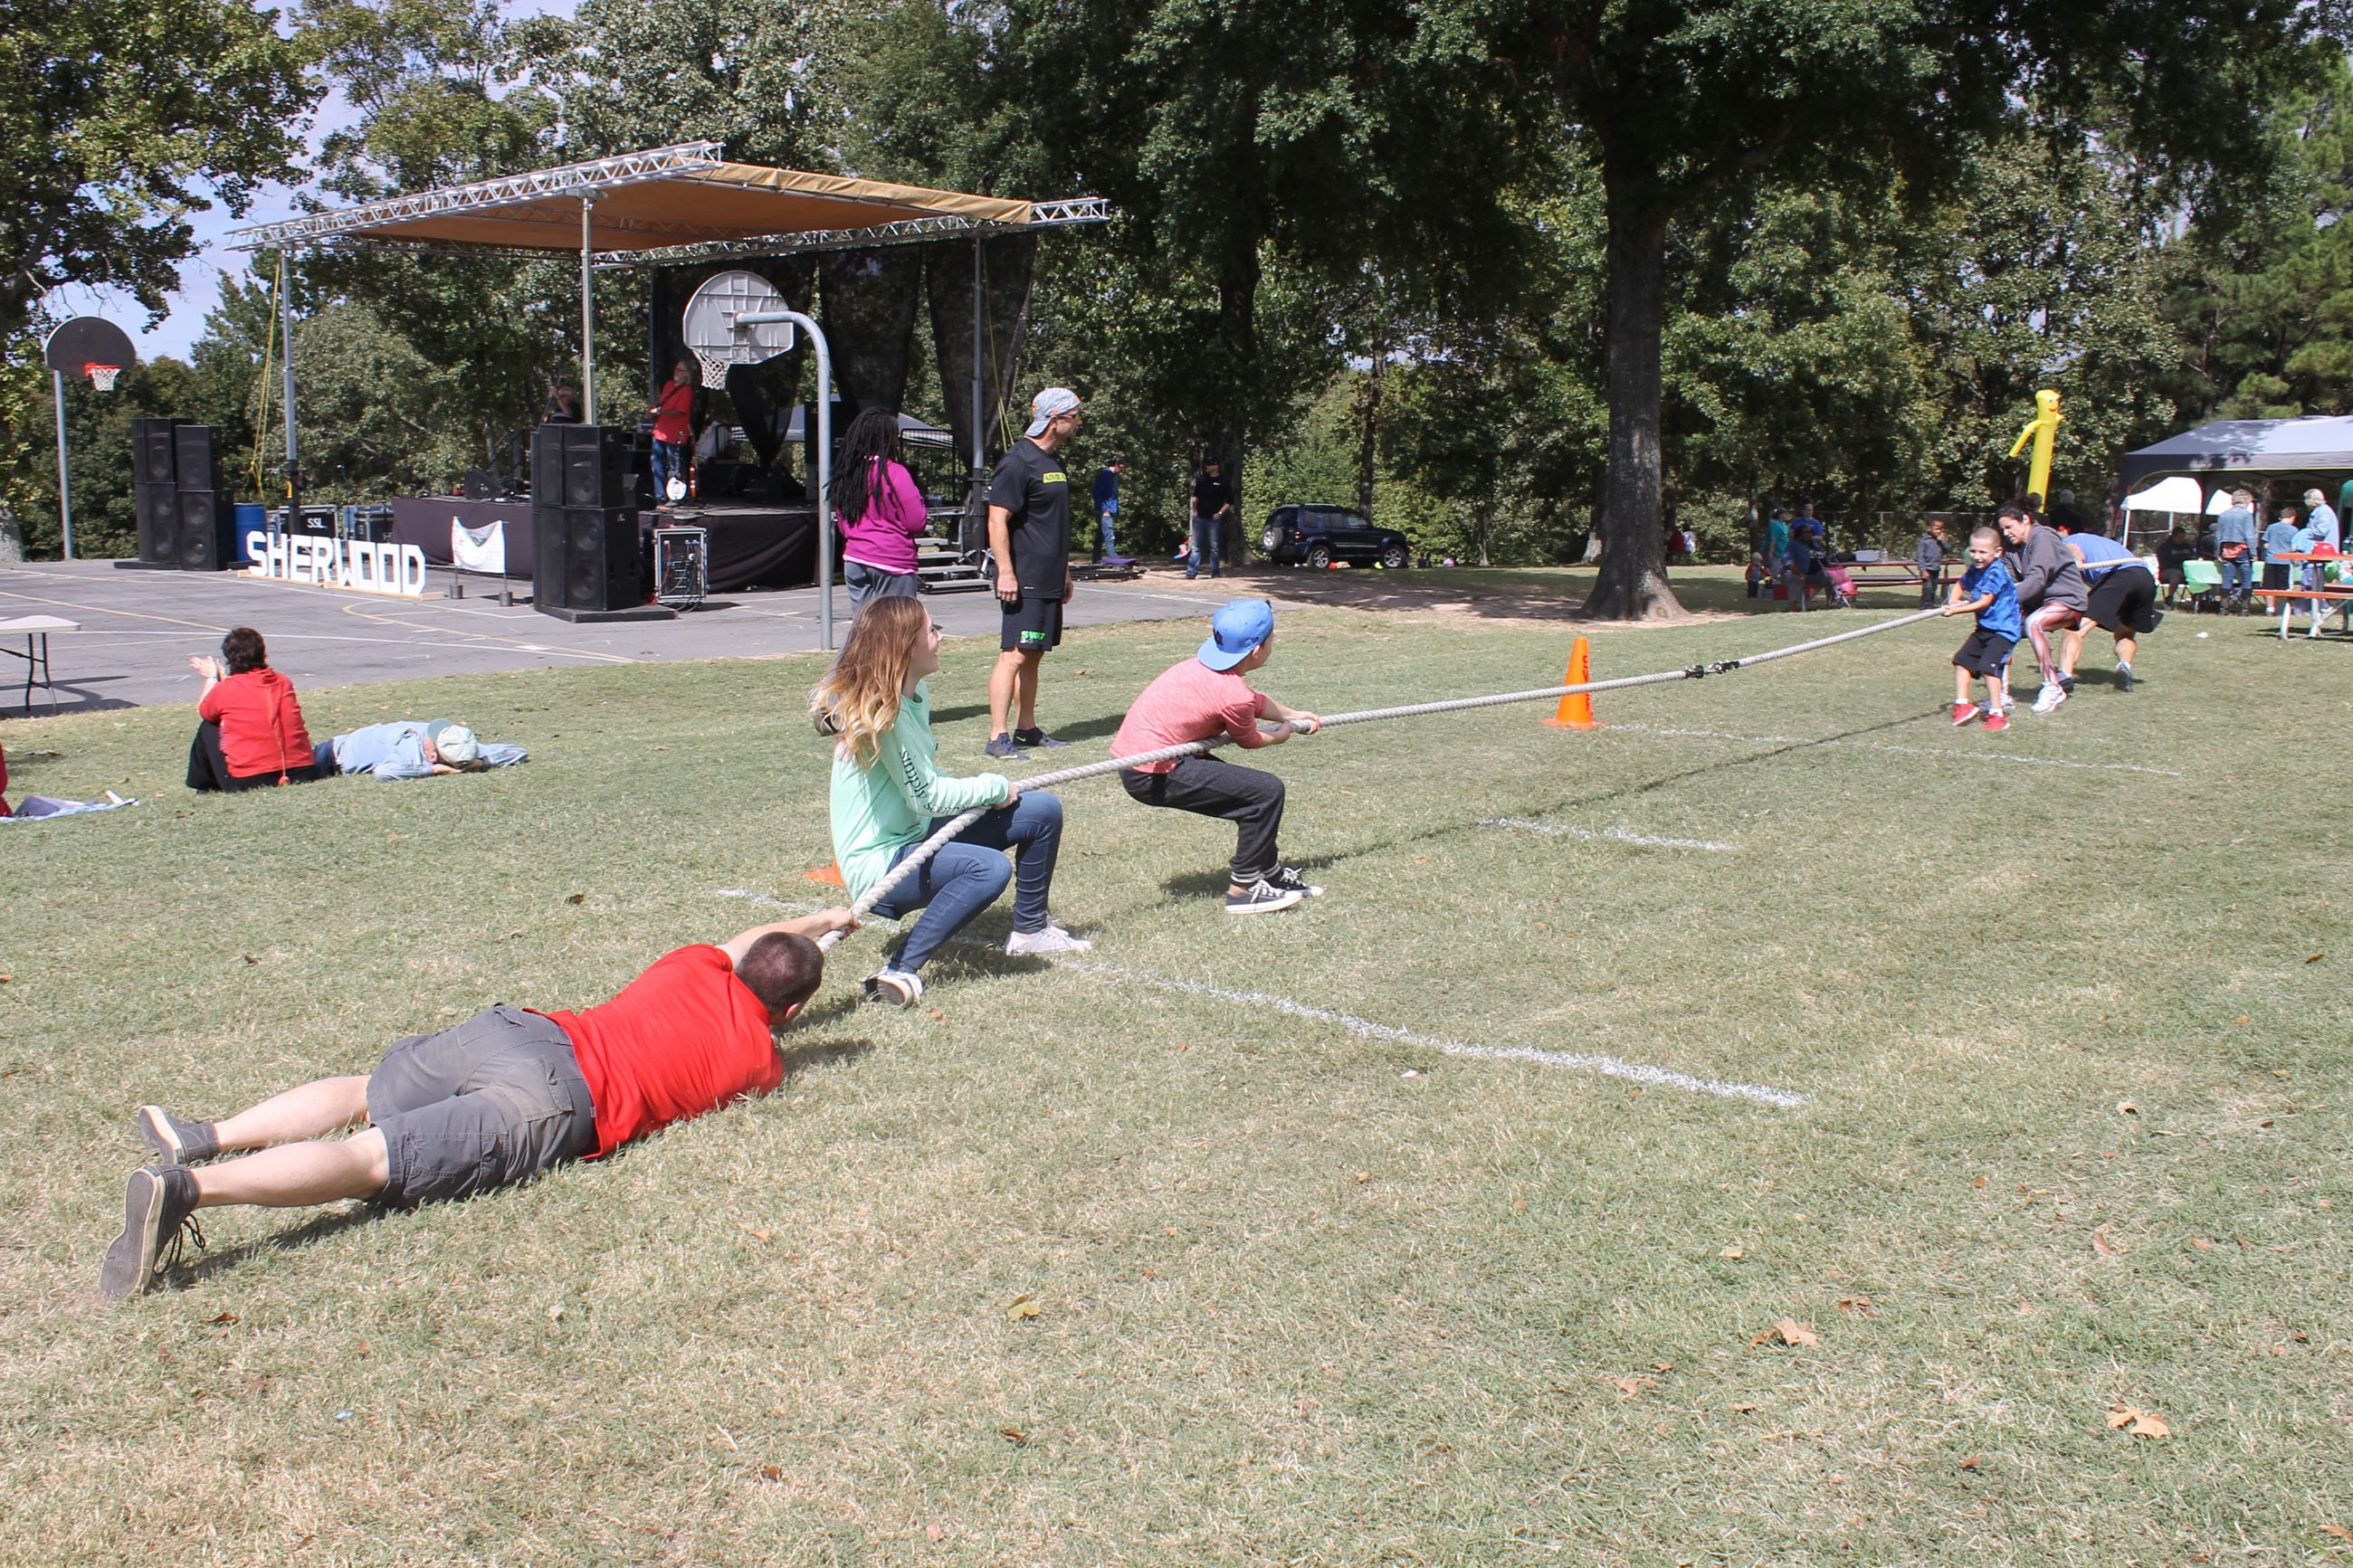 Image of Tug of War Contest